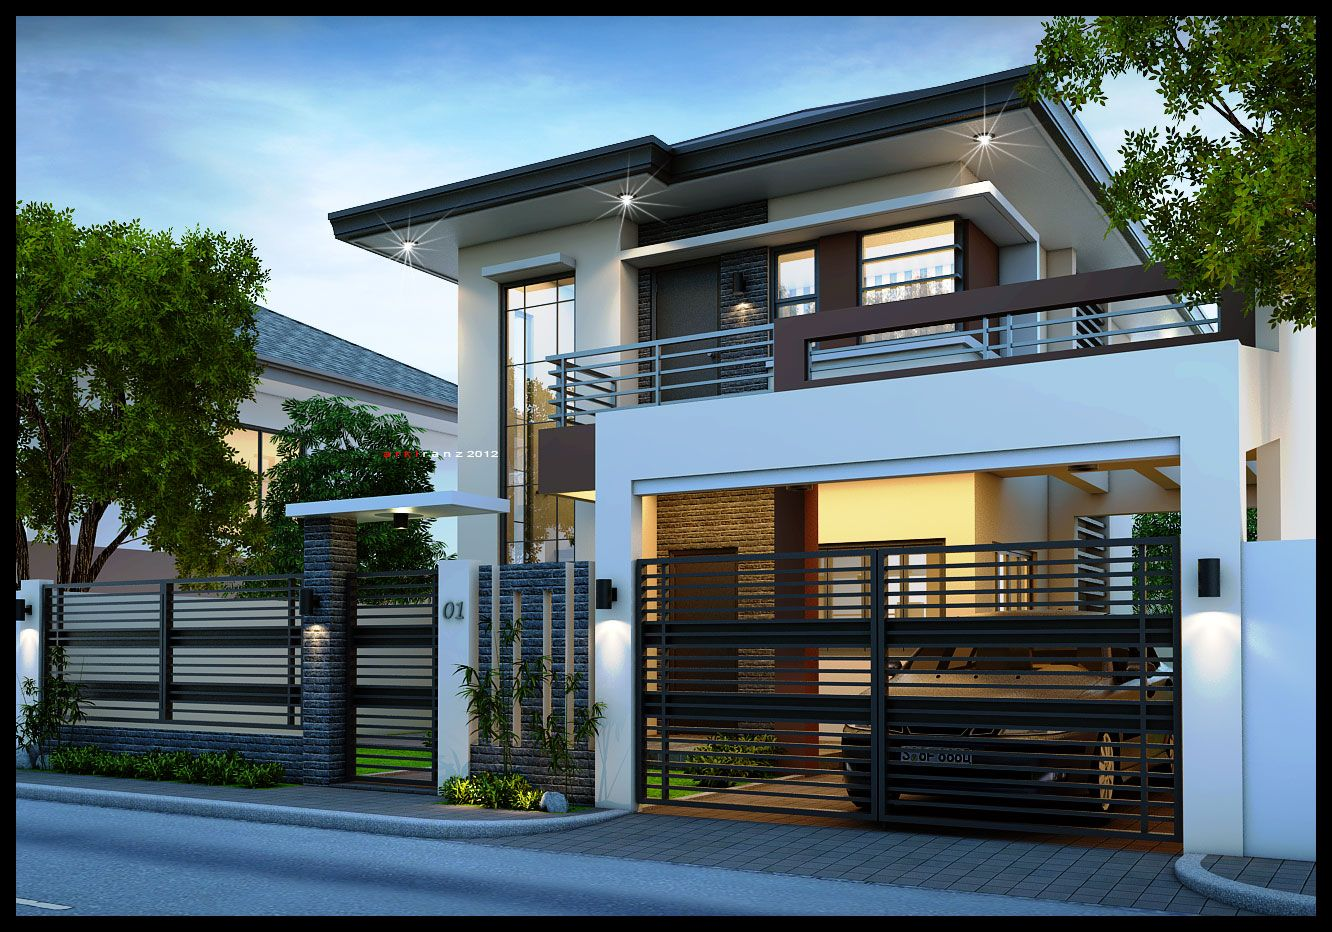 b4f46135ec66b7c2bc1c05b8de2d3466 - 31+ Simple Modern Minimalist Small House Design Gif